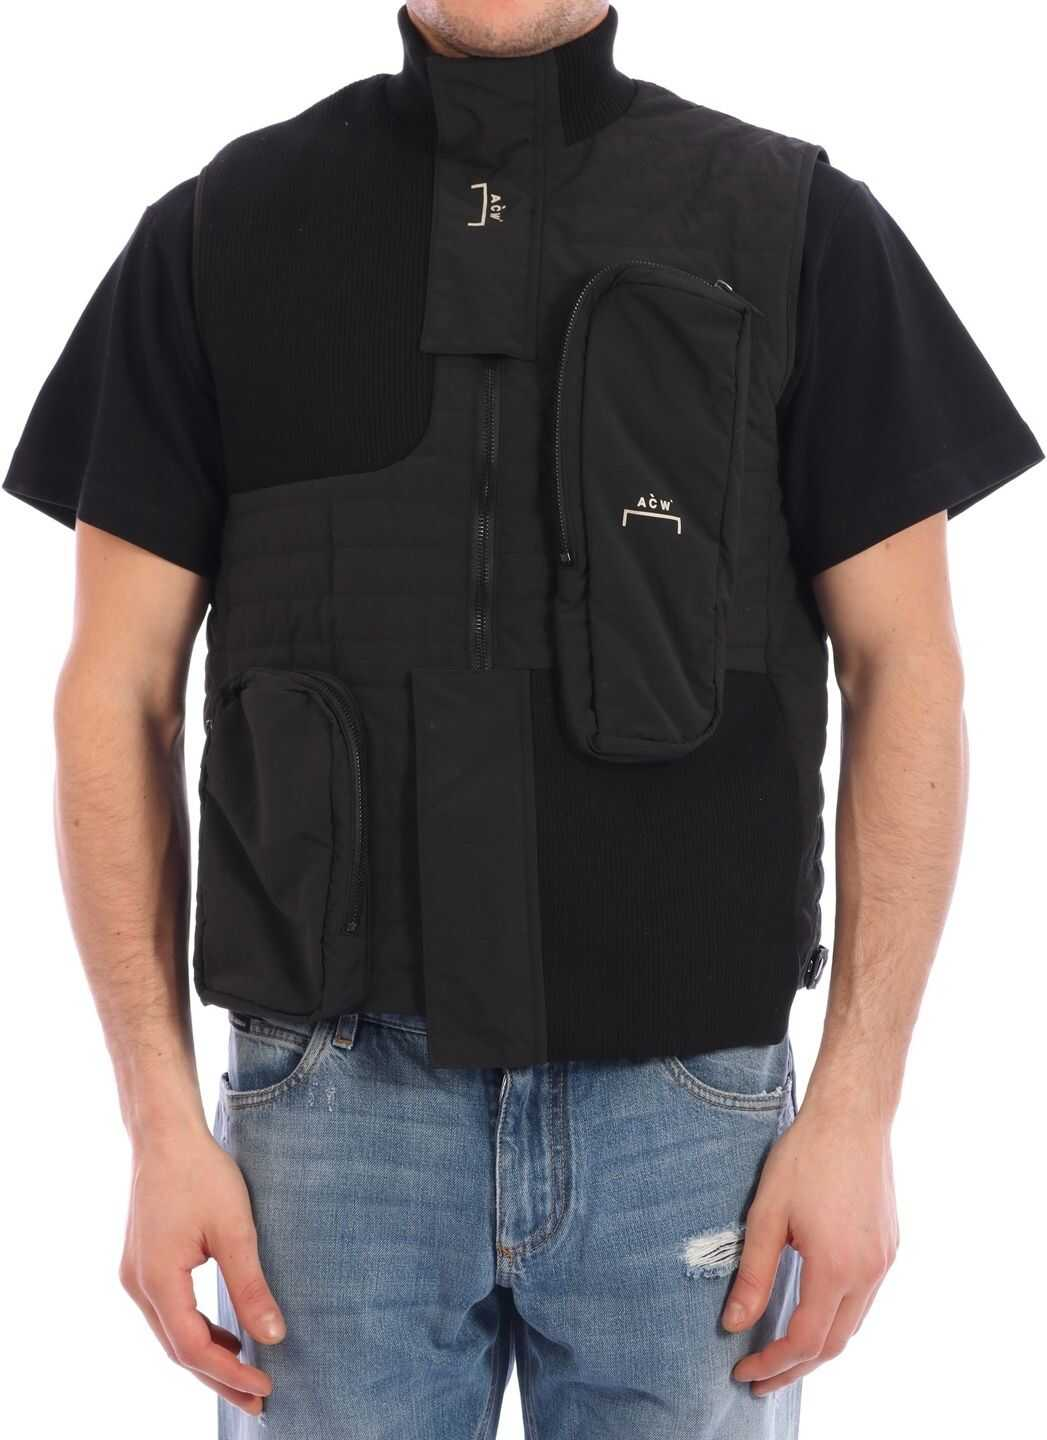 A-COLD-WALL* Pockets Vest Black